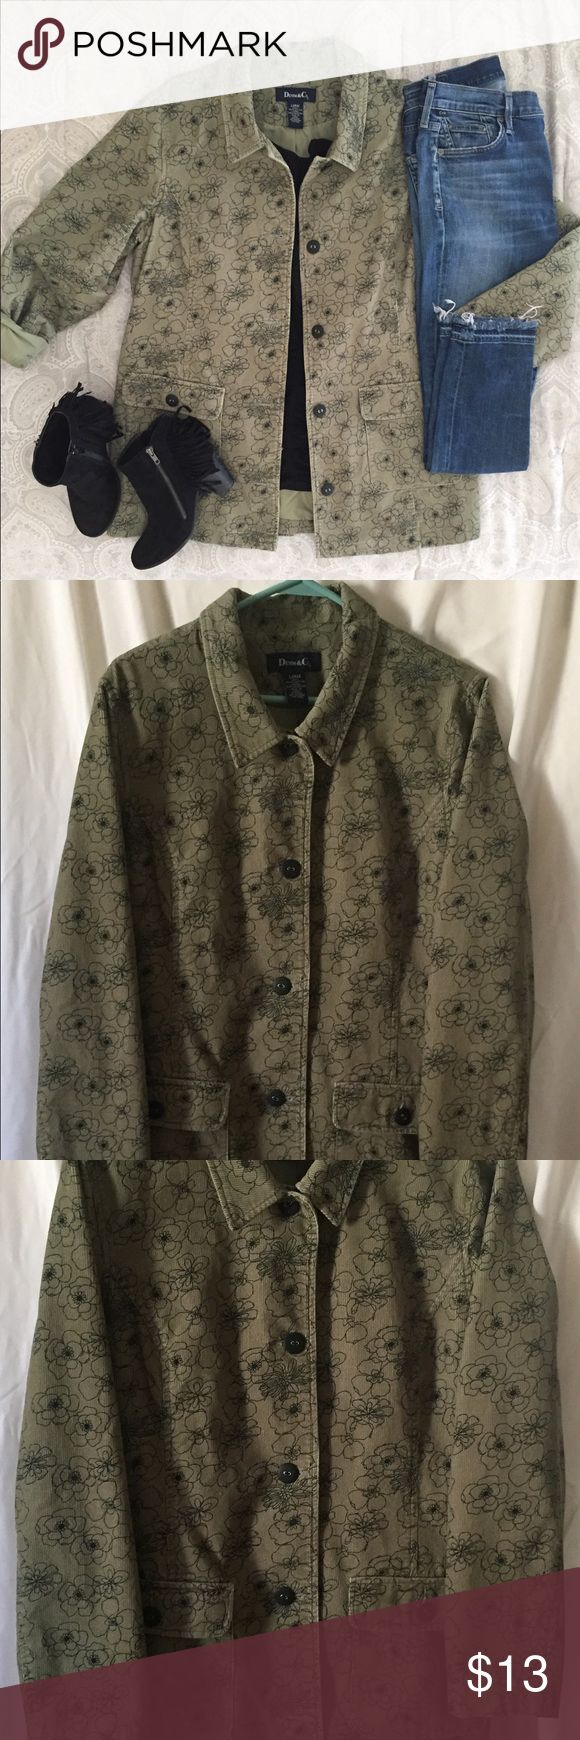 💚DENIM & COMPANY JACKET💚 💚DEMIN & COMPANY SAGE GREEN CORDUROY WOMENS JACKET. FLORAL PRINT. 2 POCKETS IN FRONT. SIZE LARGE, FITS SIMILAR TO EXTRA LARGE. EXCELLENT CONDITION.💚 Denim & Company Jackets & Coats